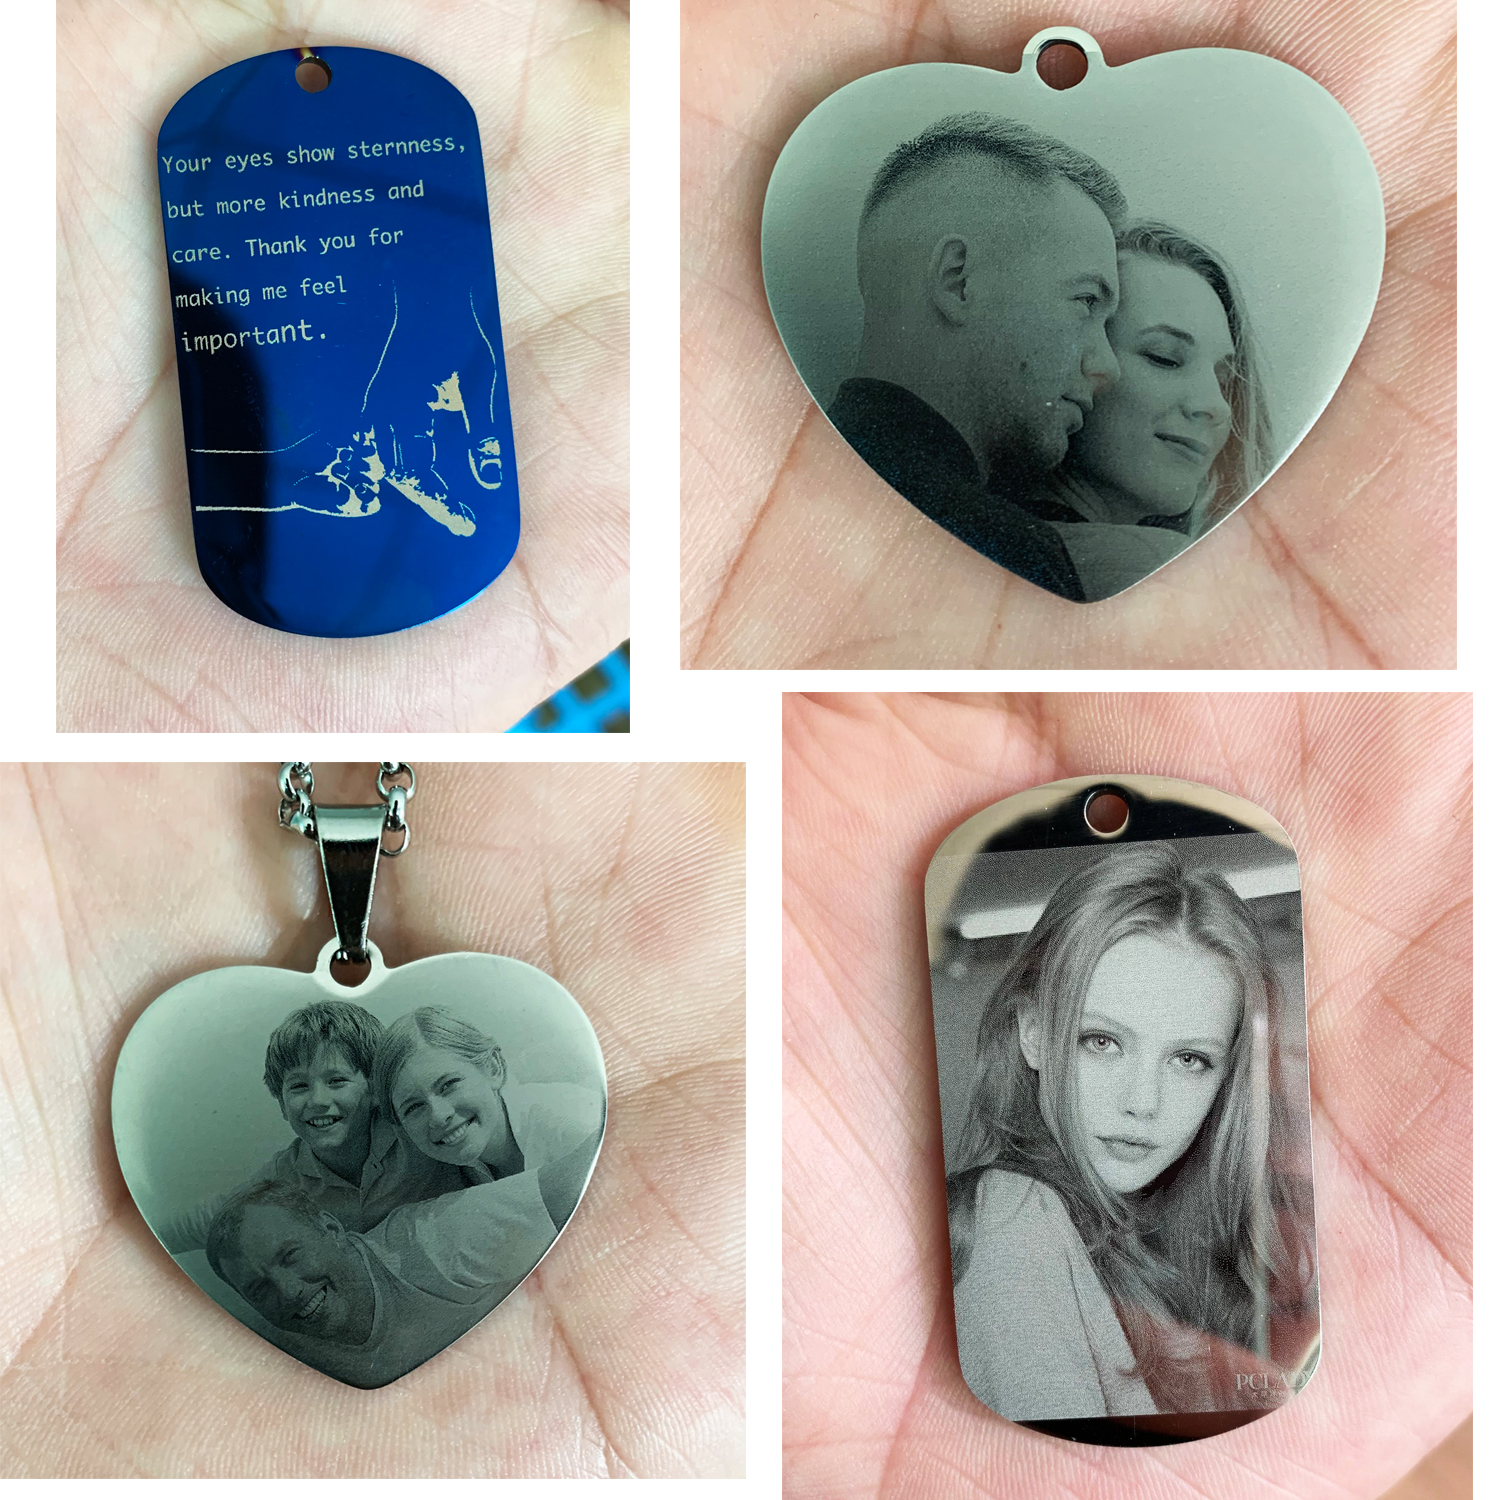 4 Colors Customized Engrave Text Stainless Steel Pendant rectangle Shape ID Tag Accept 1pcs Customize VD 002 in Pendant Necklaces from Jewelry Accessories